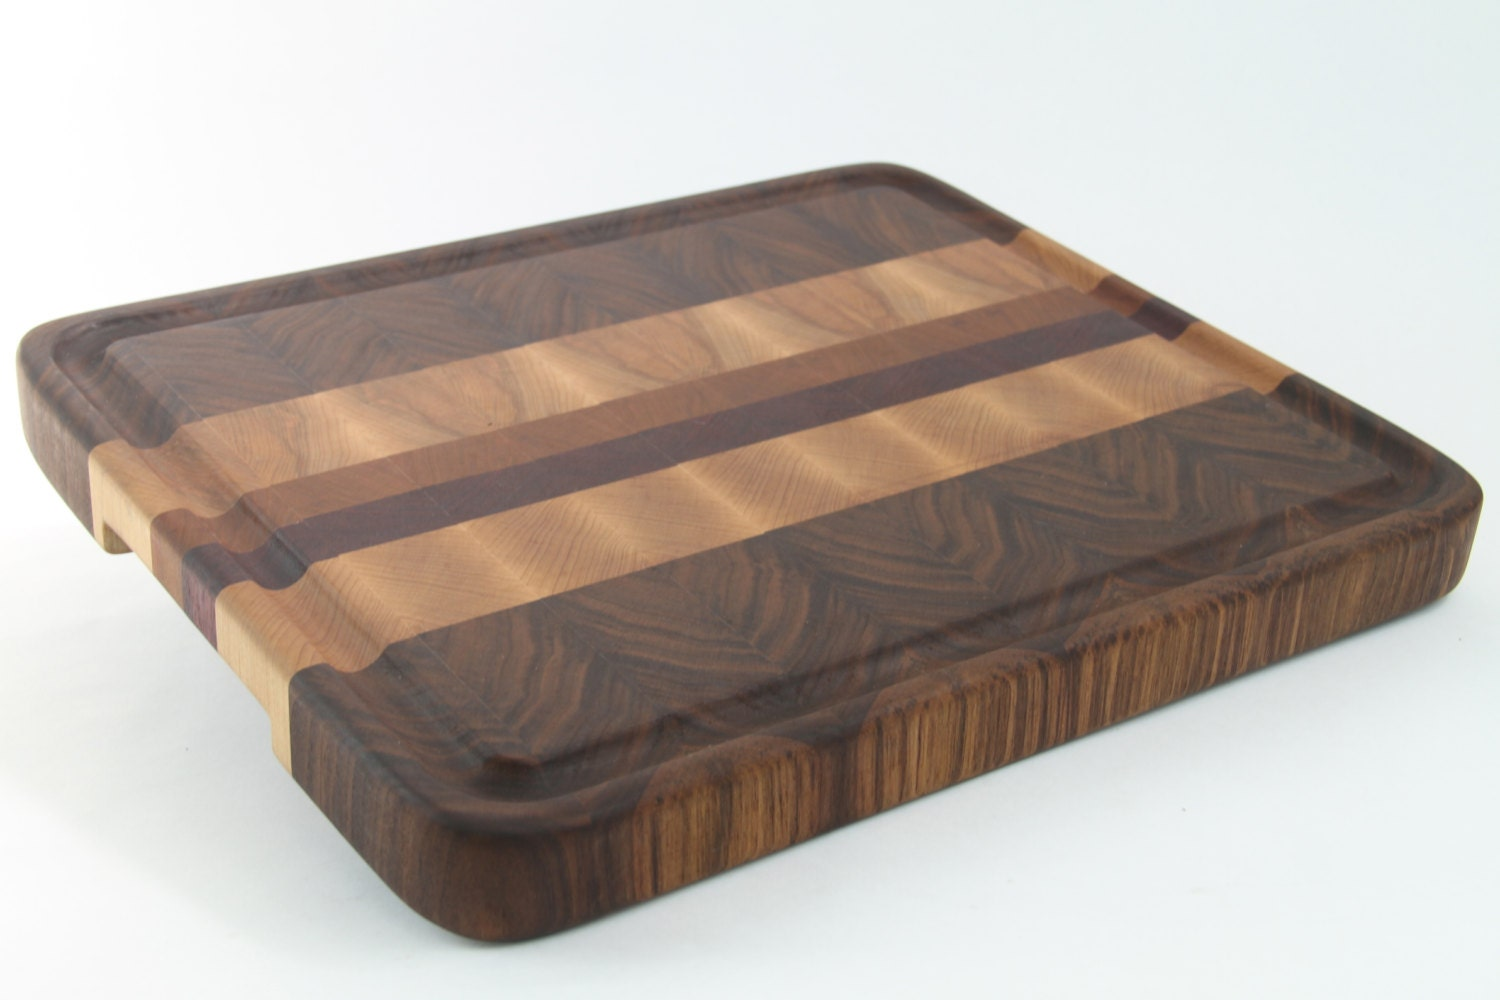 handcrafted wood cutting board end grain walnut cherry. Black Bedroom Furniture Sets. Home Design Ideas